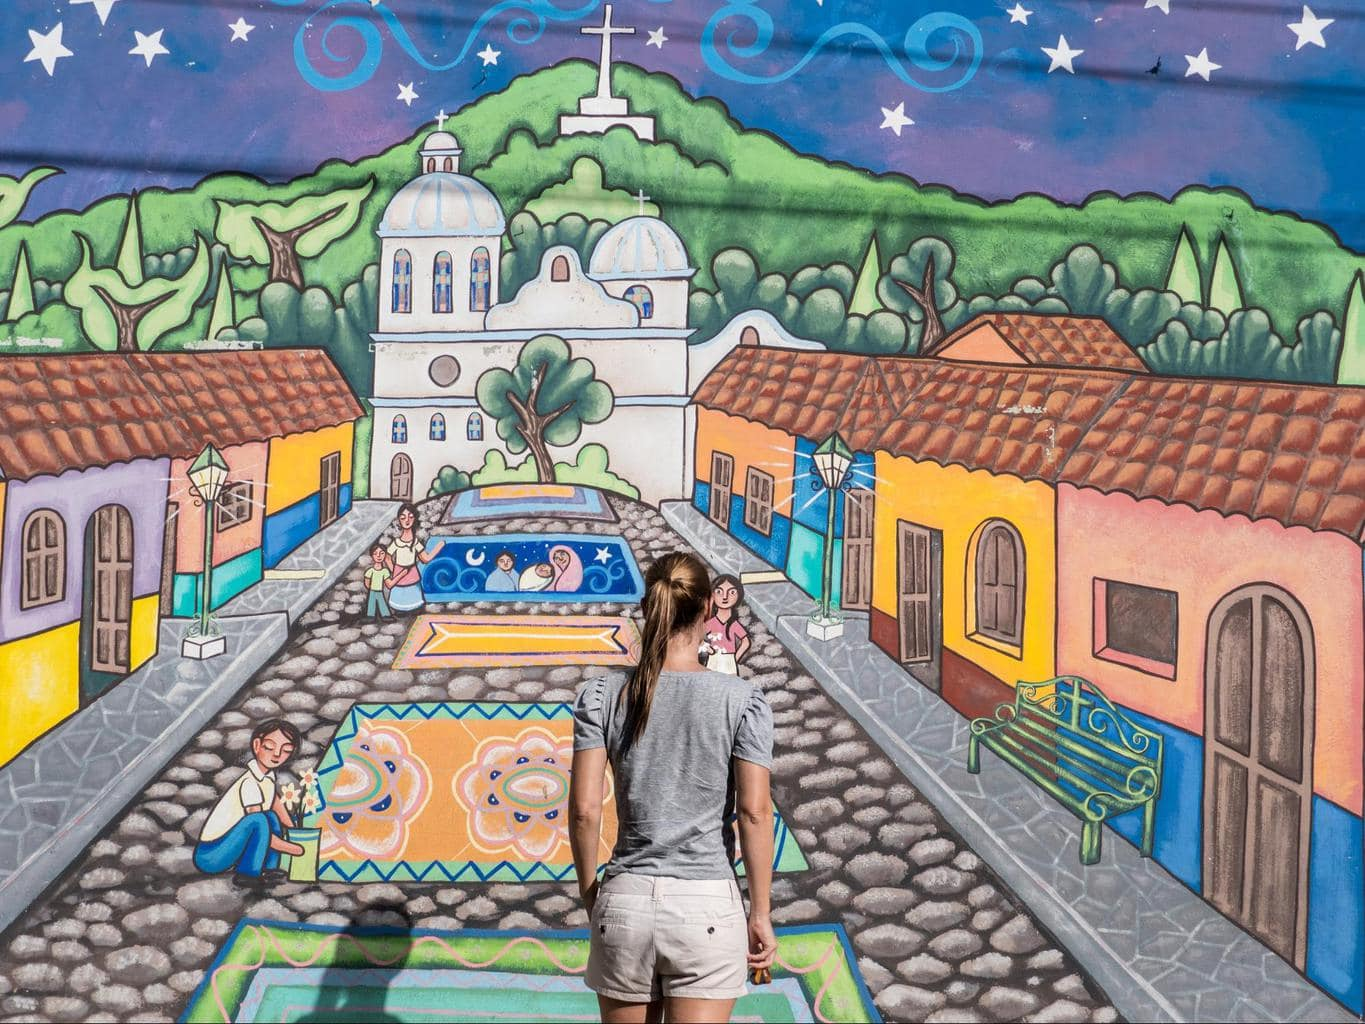 Mural in El Salvador